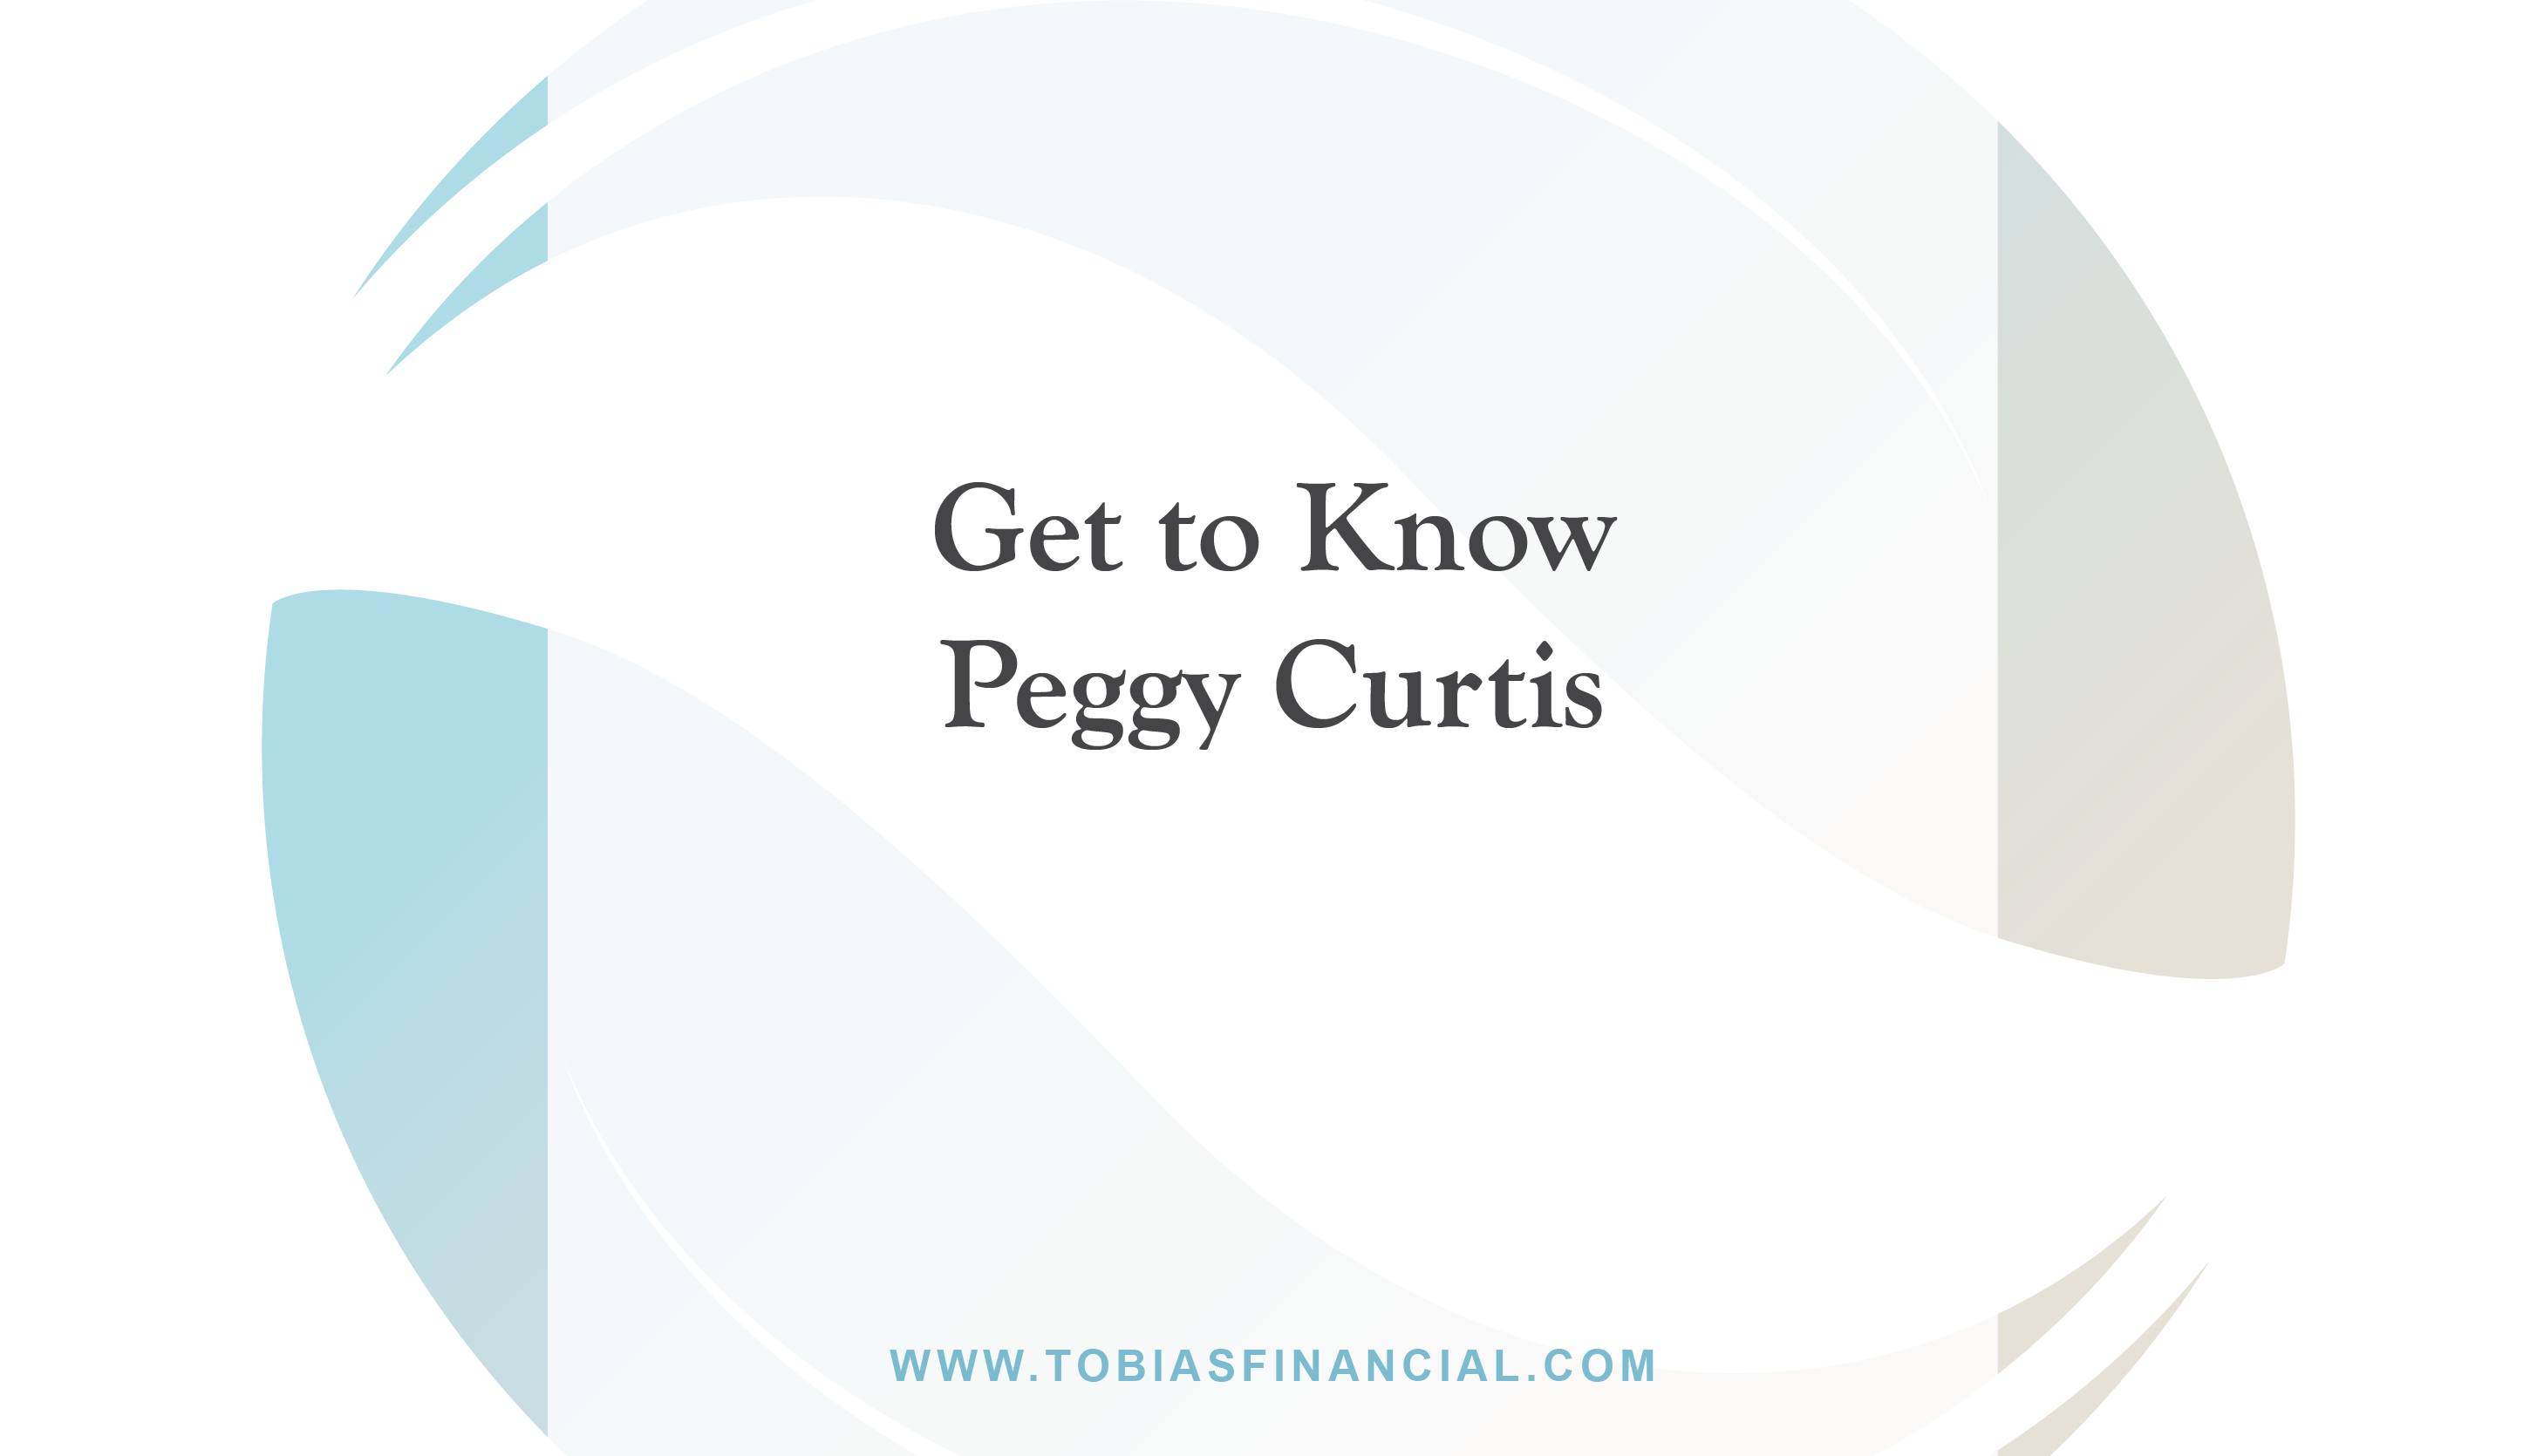 Get to Know Peggy Curtis